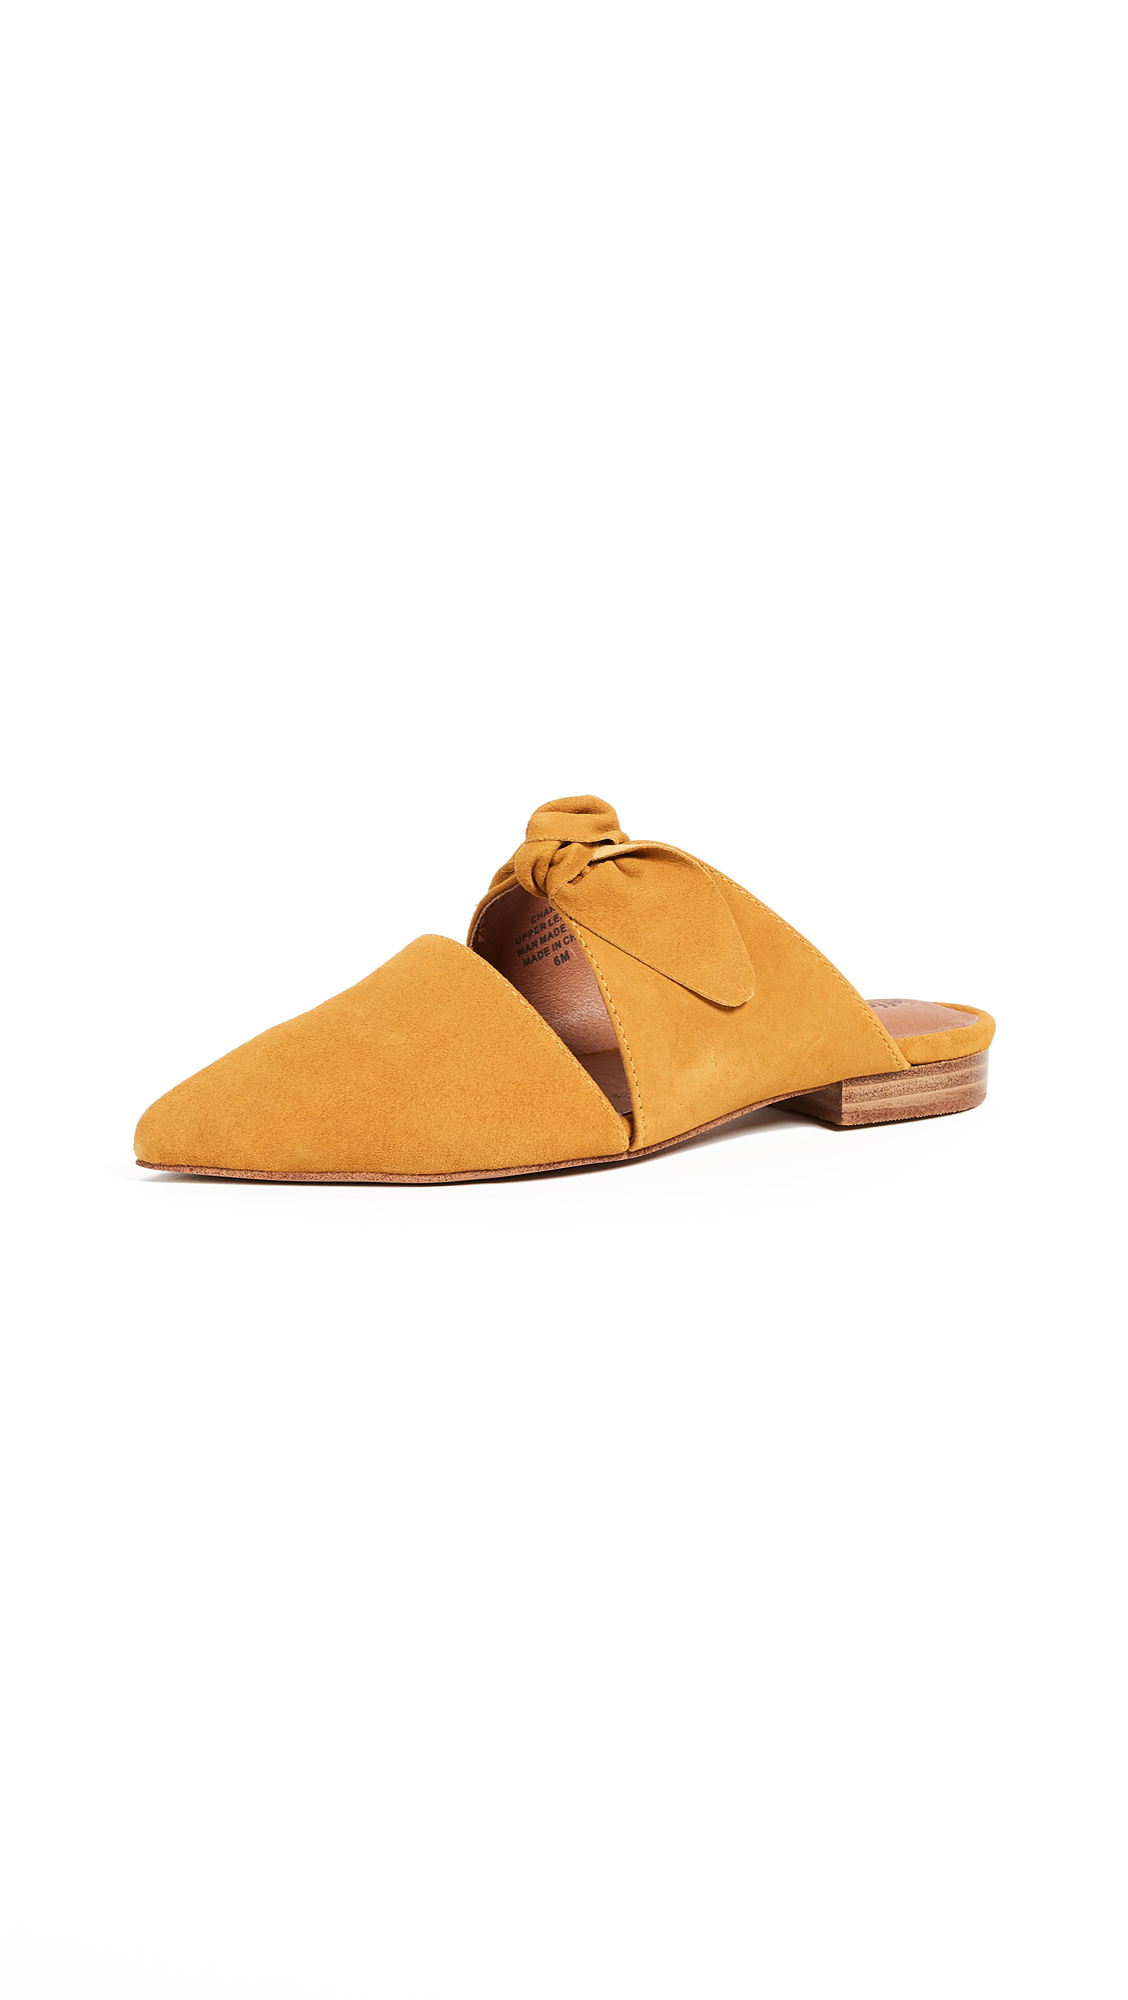 Jeffrey Campbell Charlin Point Toe Mules - Mustard